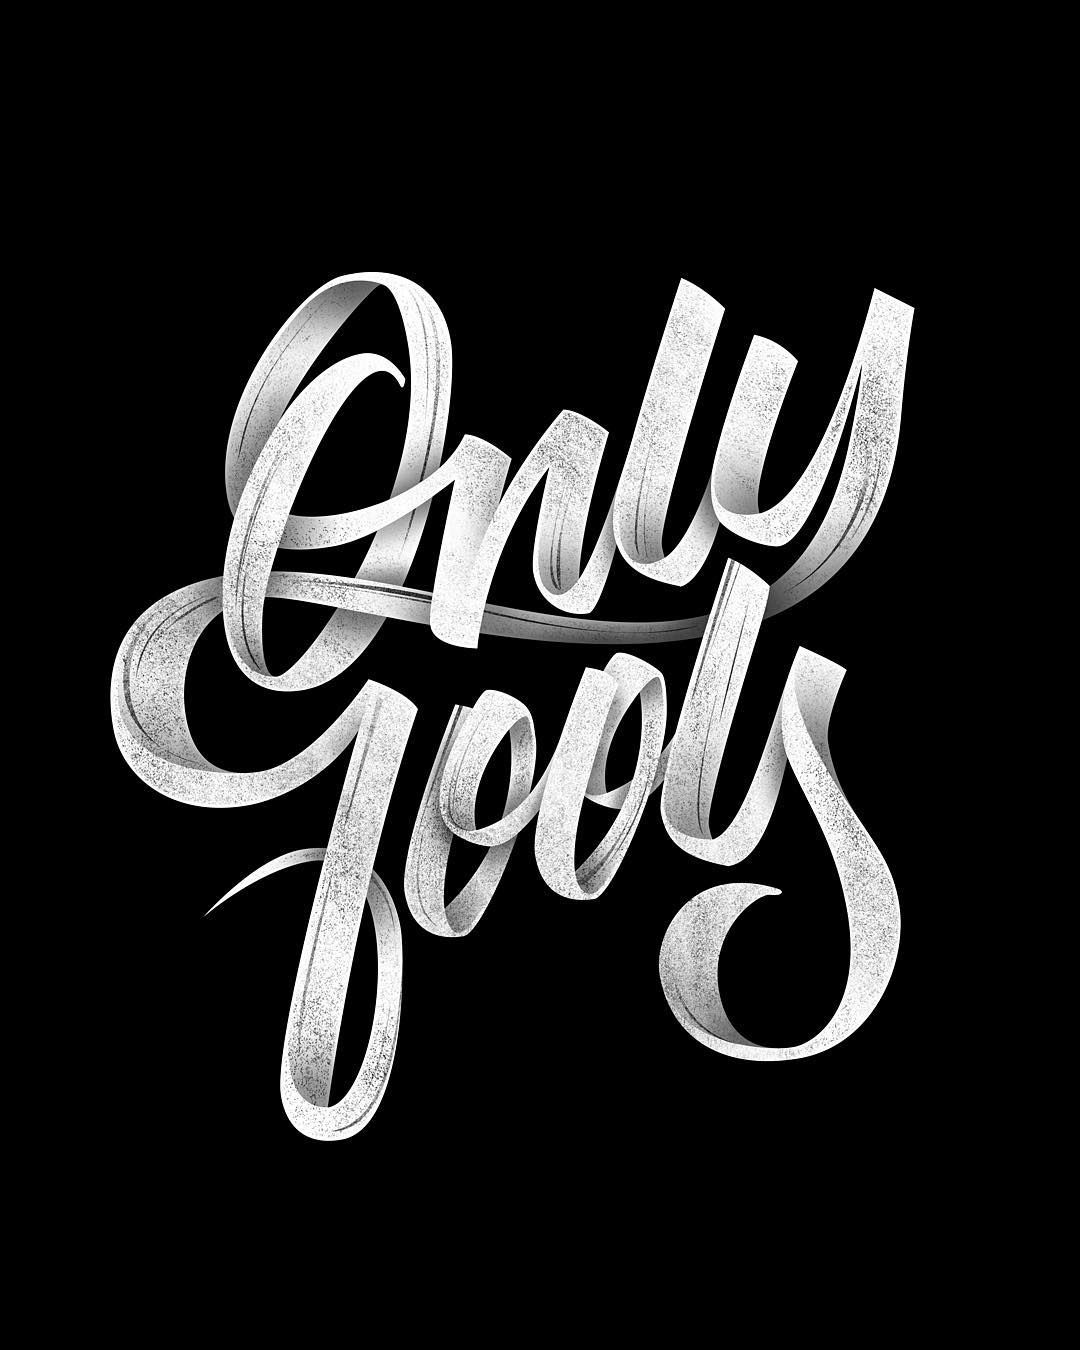 Michael Vilorio On Instagram Troye Sivan Only Fools I Made Neon Ish Version Of This On Dribbble If Y Lettering Typography Artwork Typography Inspiration